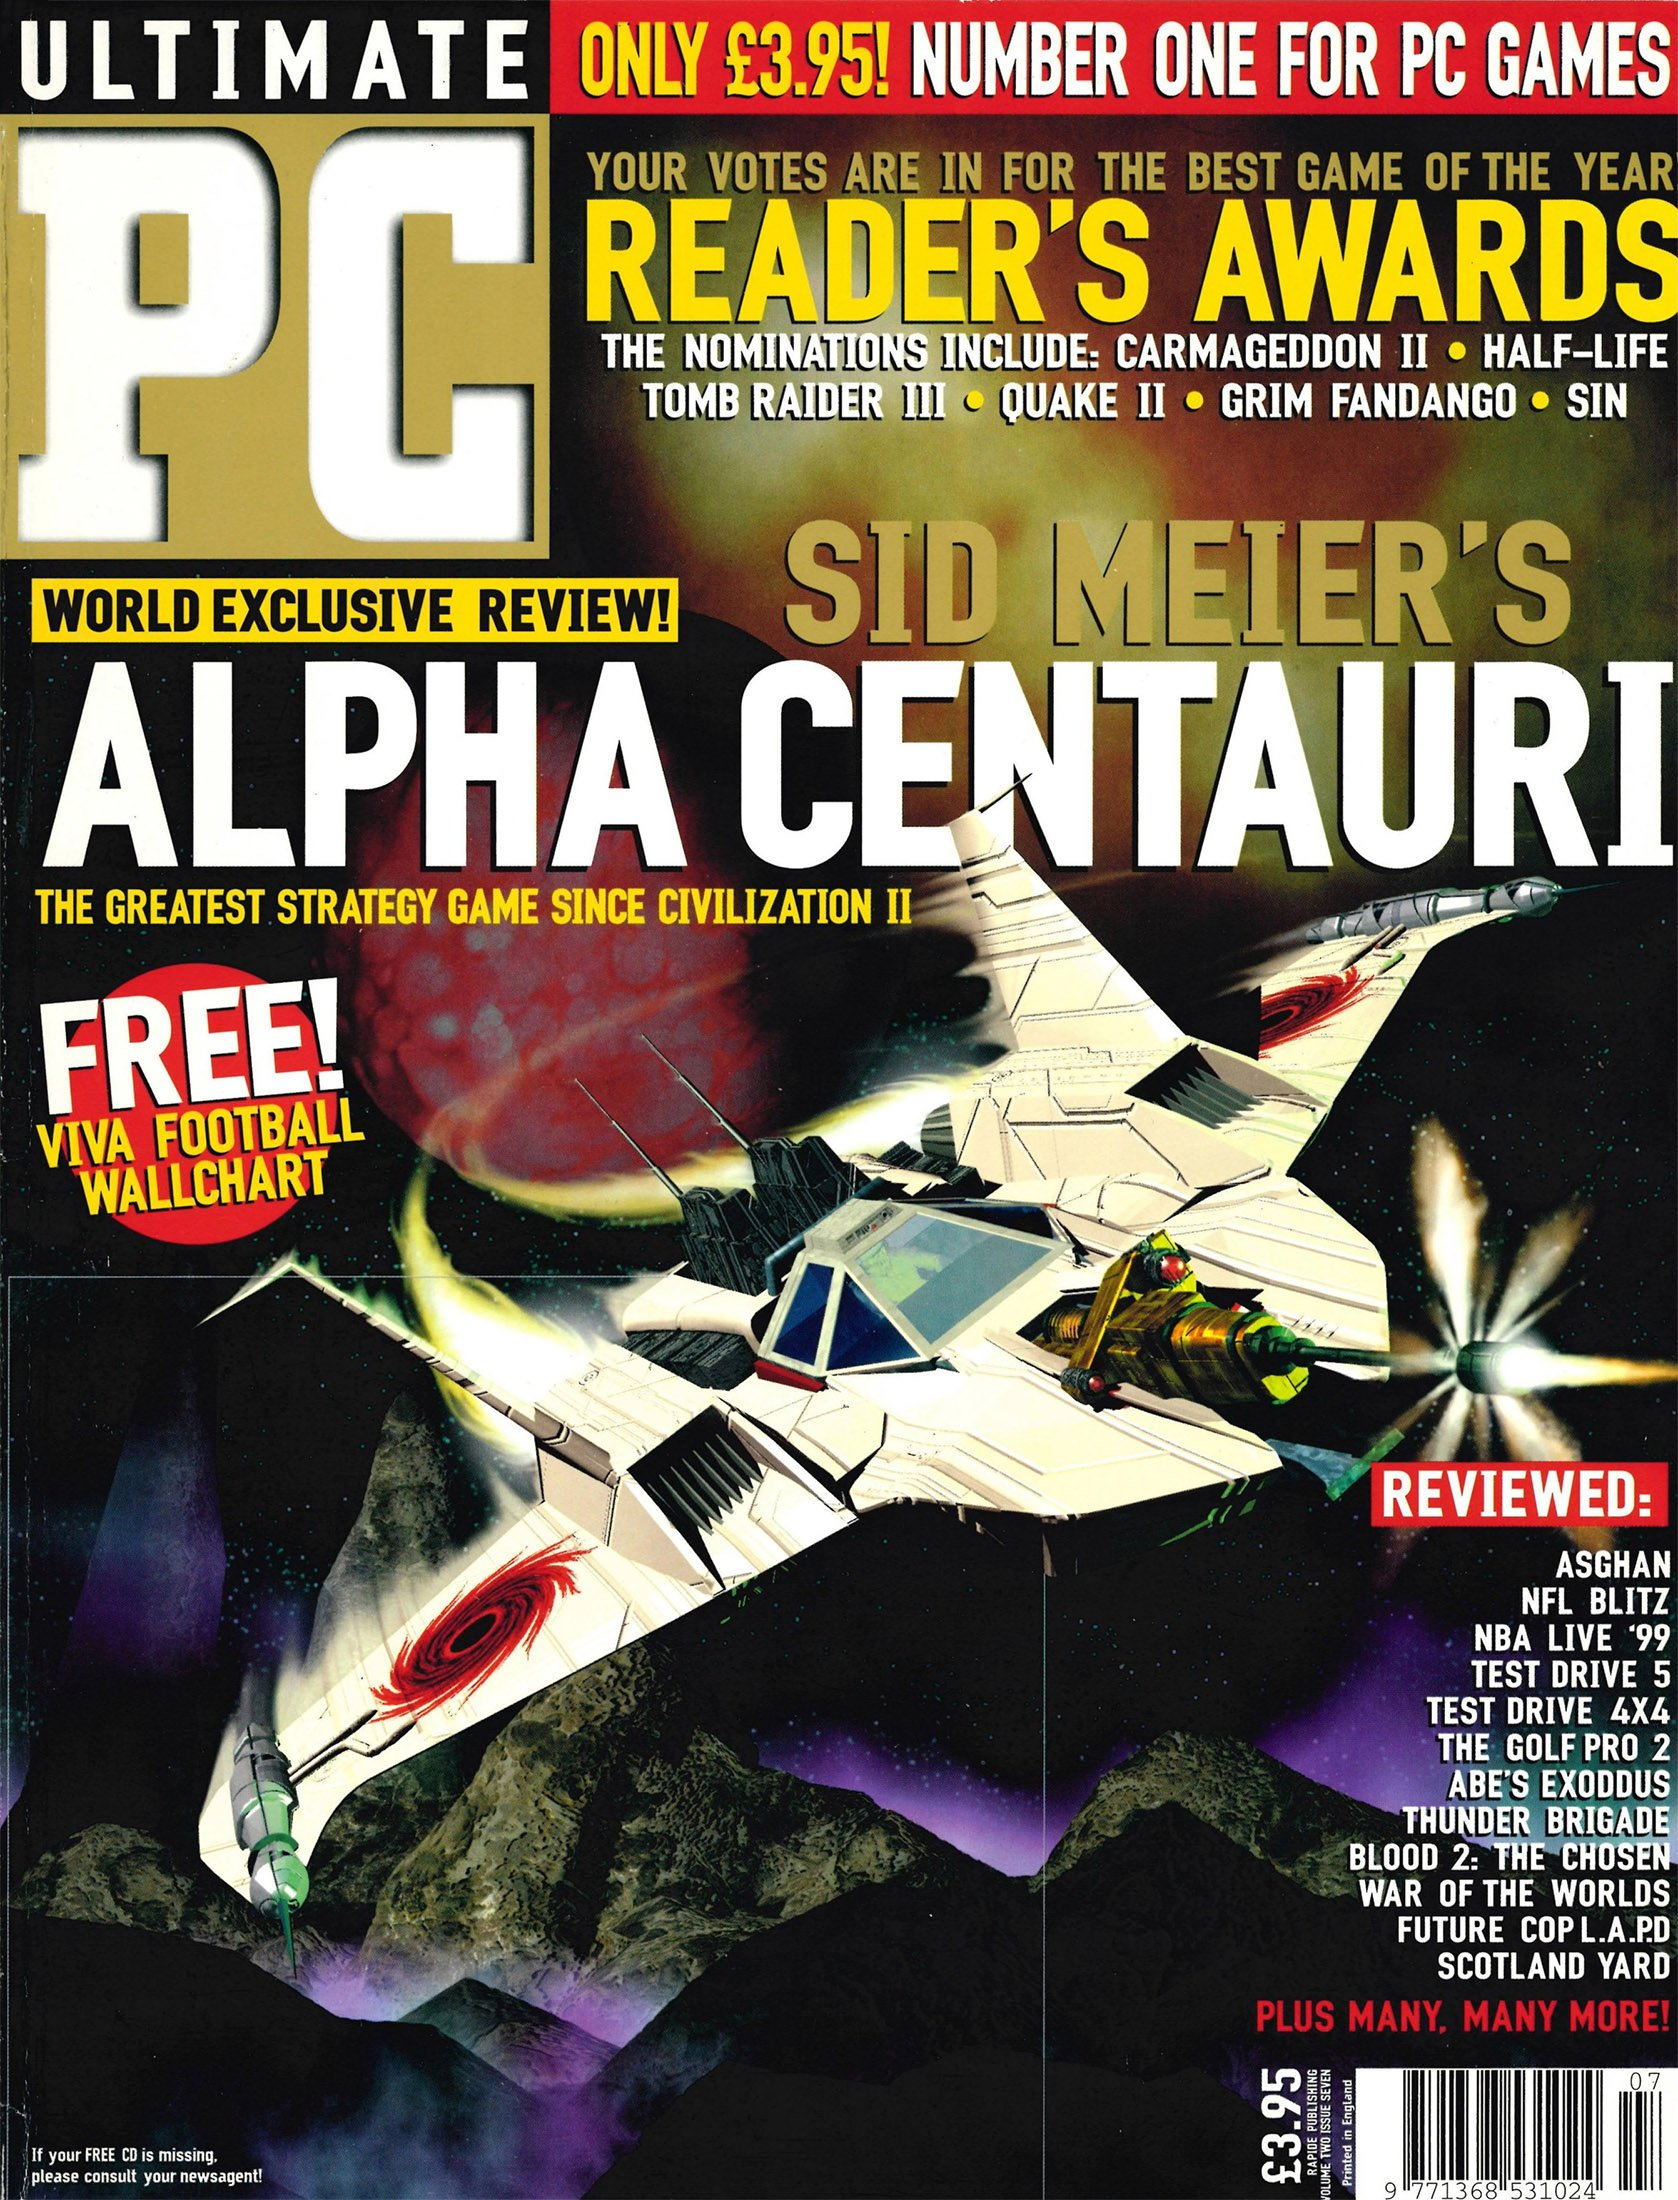 Ultimate PC Volume 2 Issue 07 (February 1999)